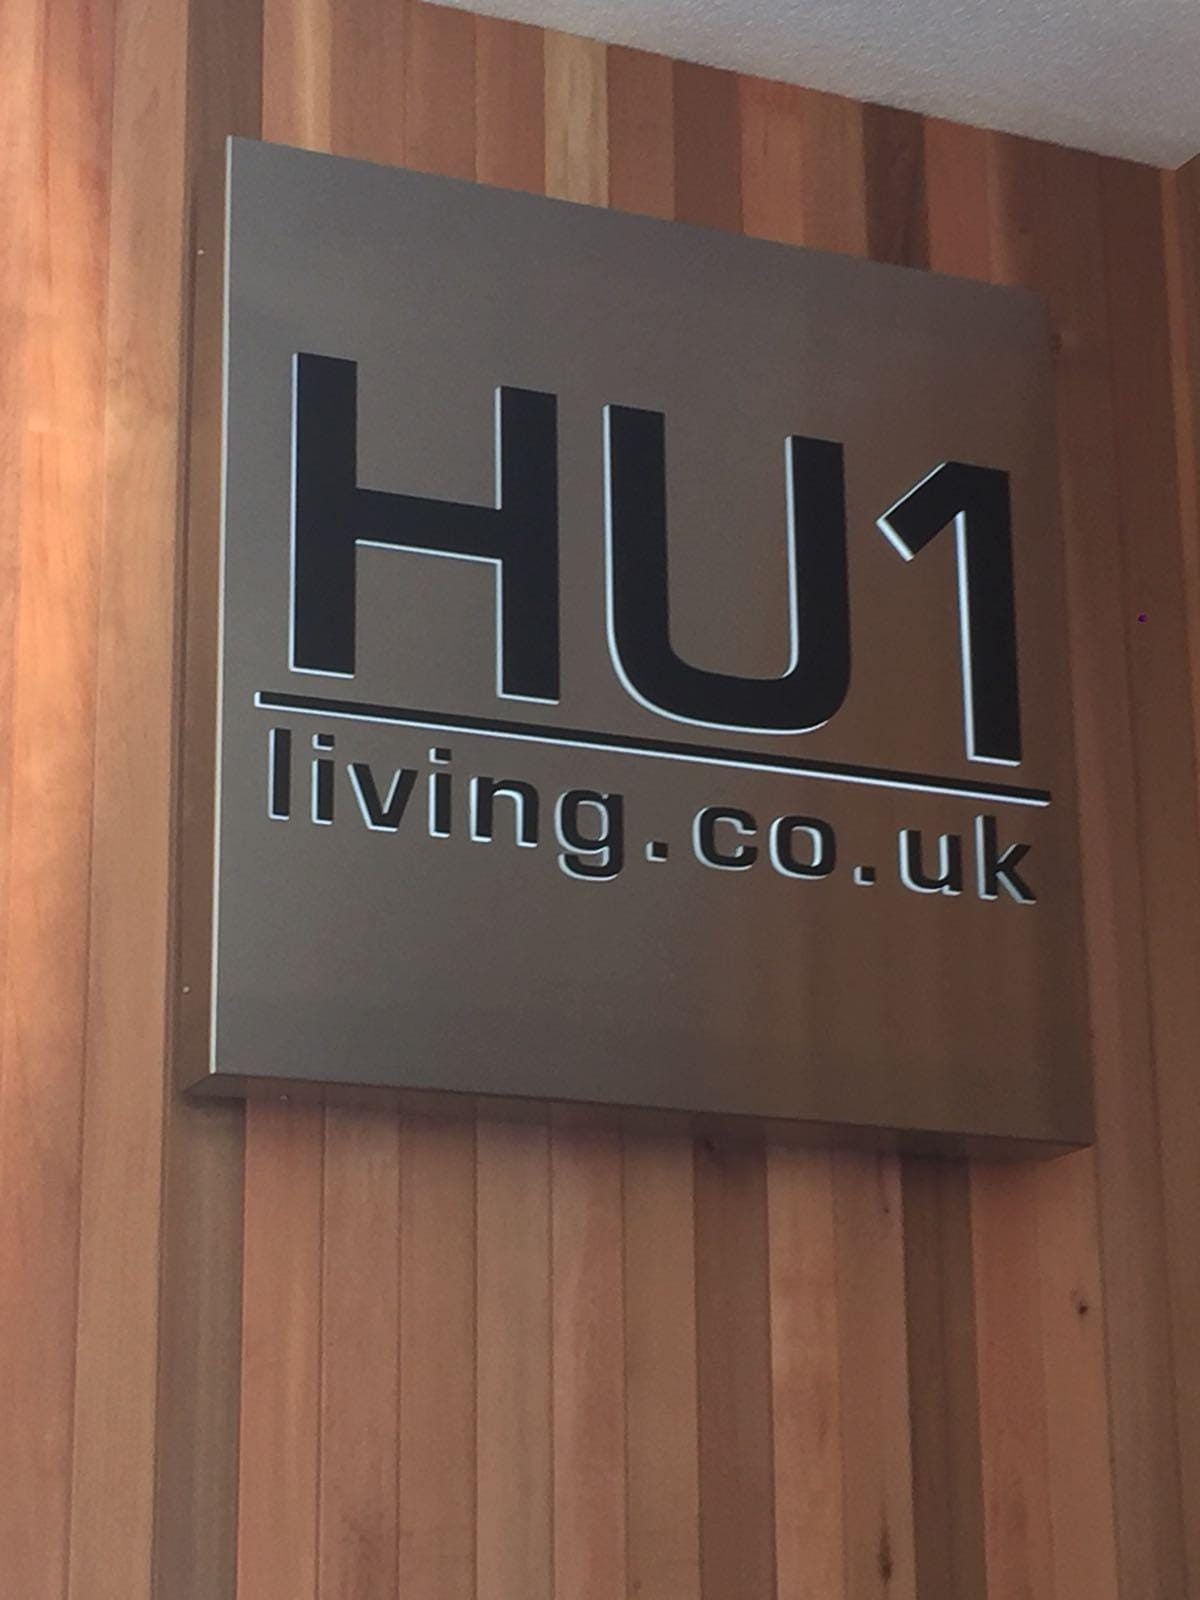 HU1 Living - Stainless Steel Office Sign